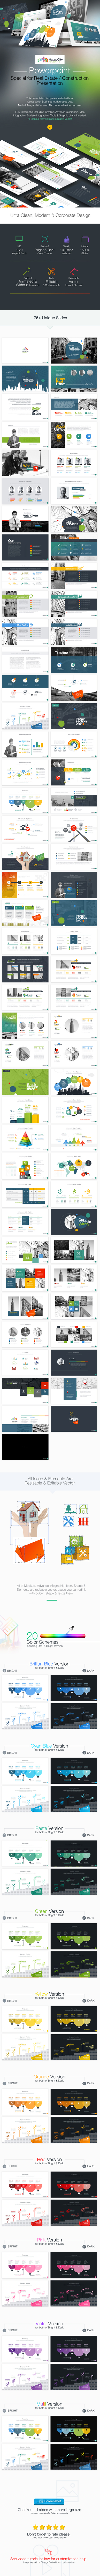 construction powerpoint presentation templates gallery - templates, Powerpoint templates